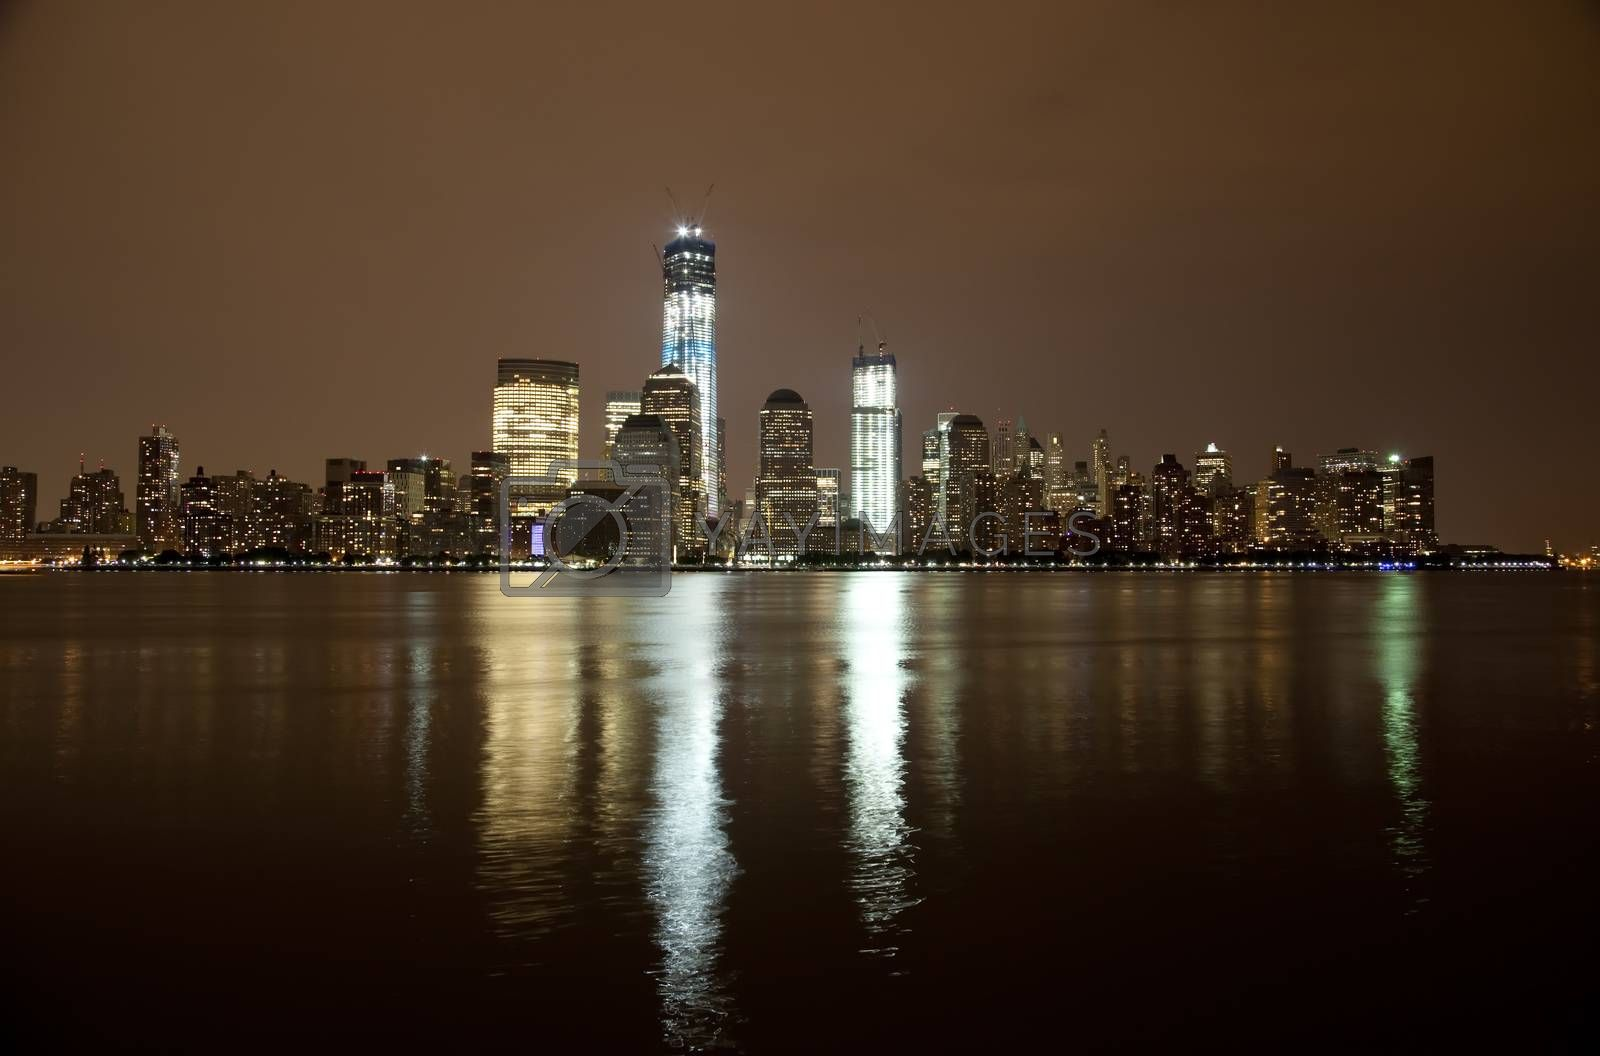 The Freedom Tower under construction at Lower Manhattan